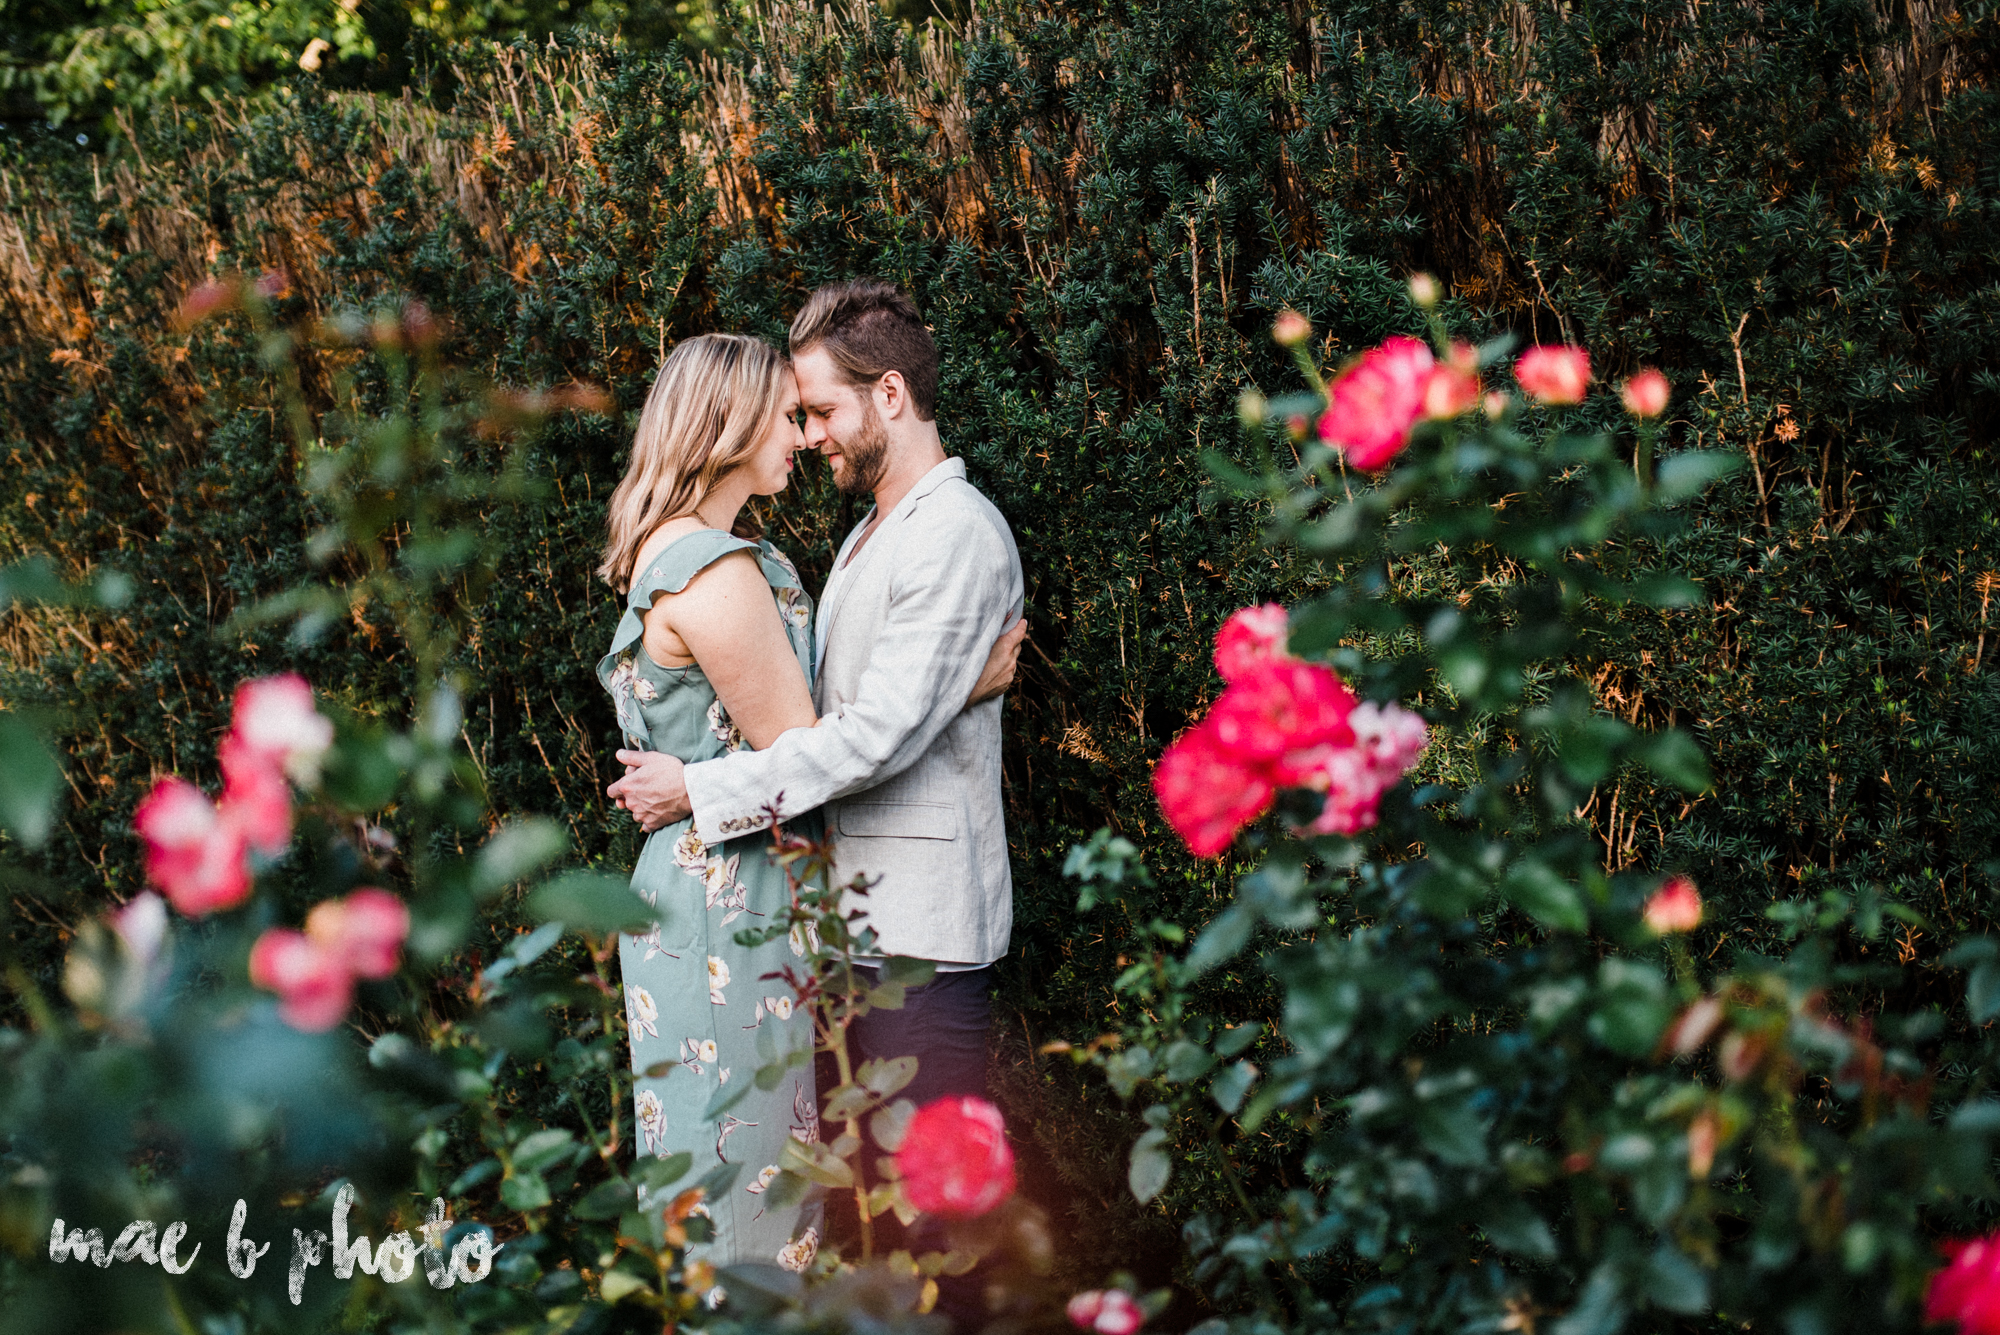 lauren and steve's summer engagement session at the rose gardens and lanterman's mill in mill creek park in youngstown ohio photographed by youngstown wedding photographer mae b photo-5.jpg